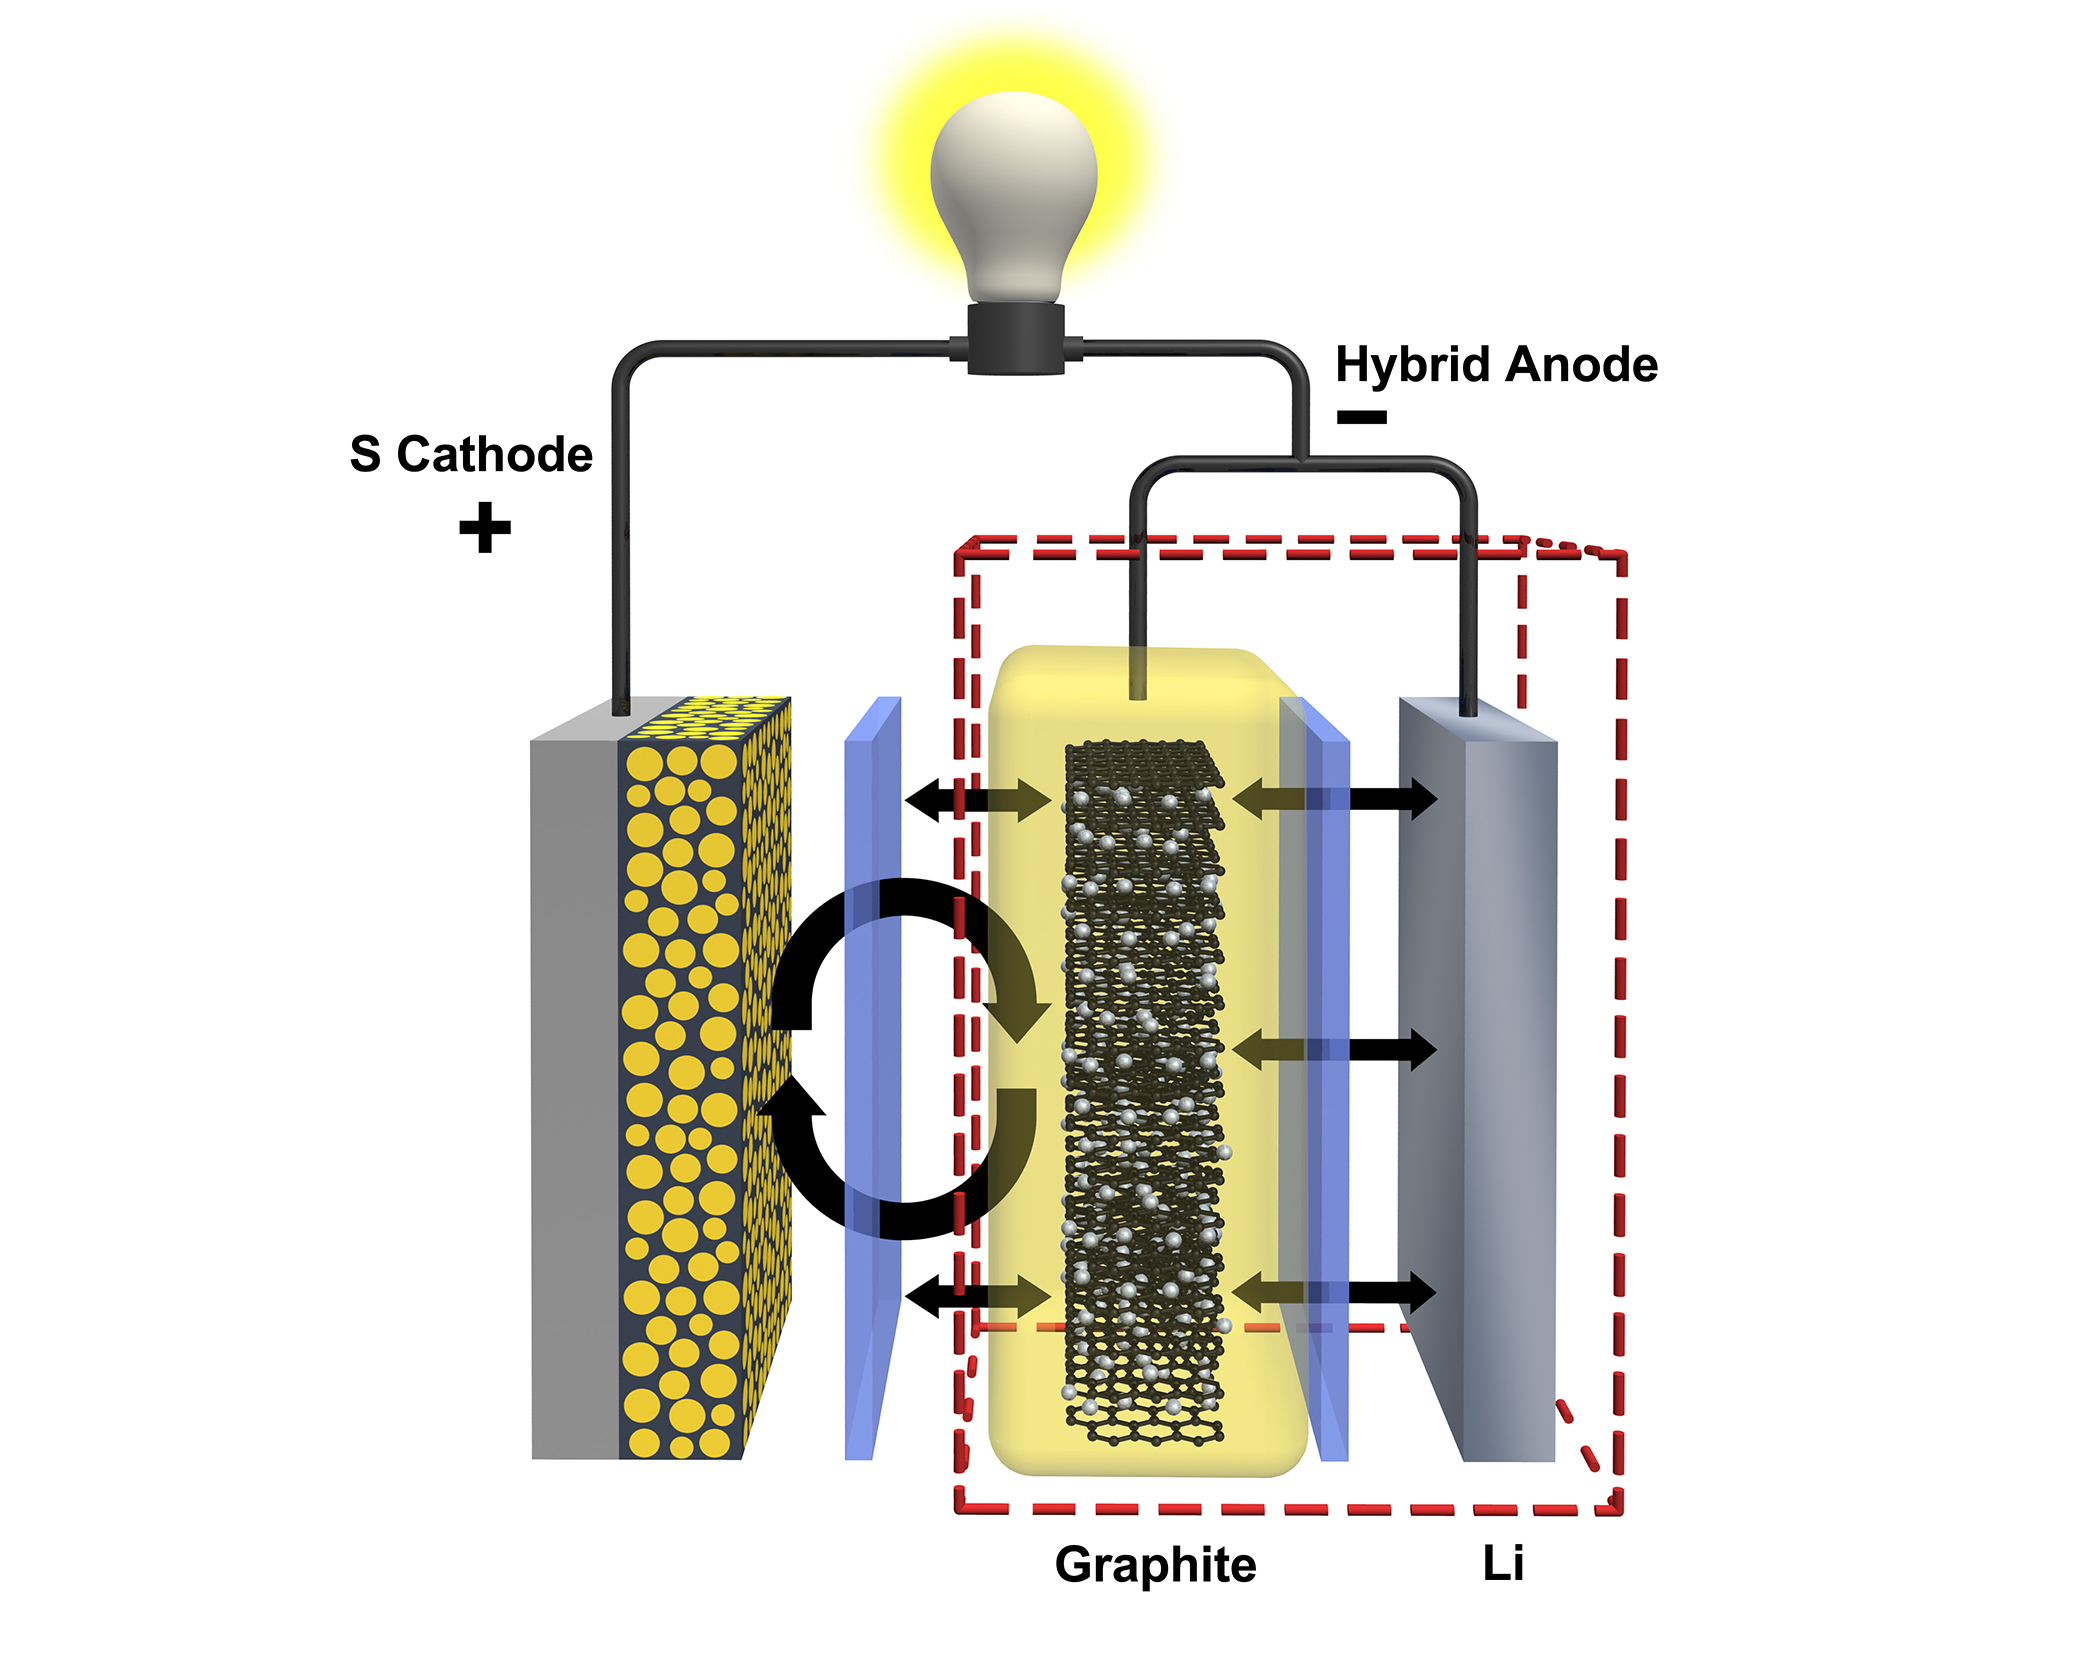 Pnnl news battery development may extend range of electric cars hybrid anode download original image pooptronica